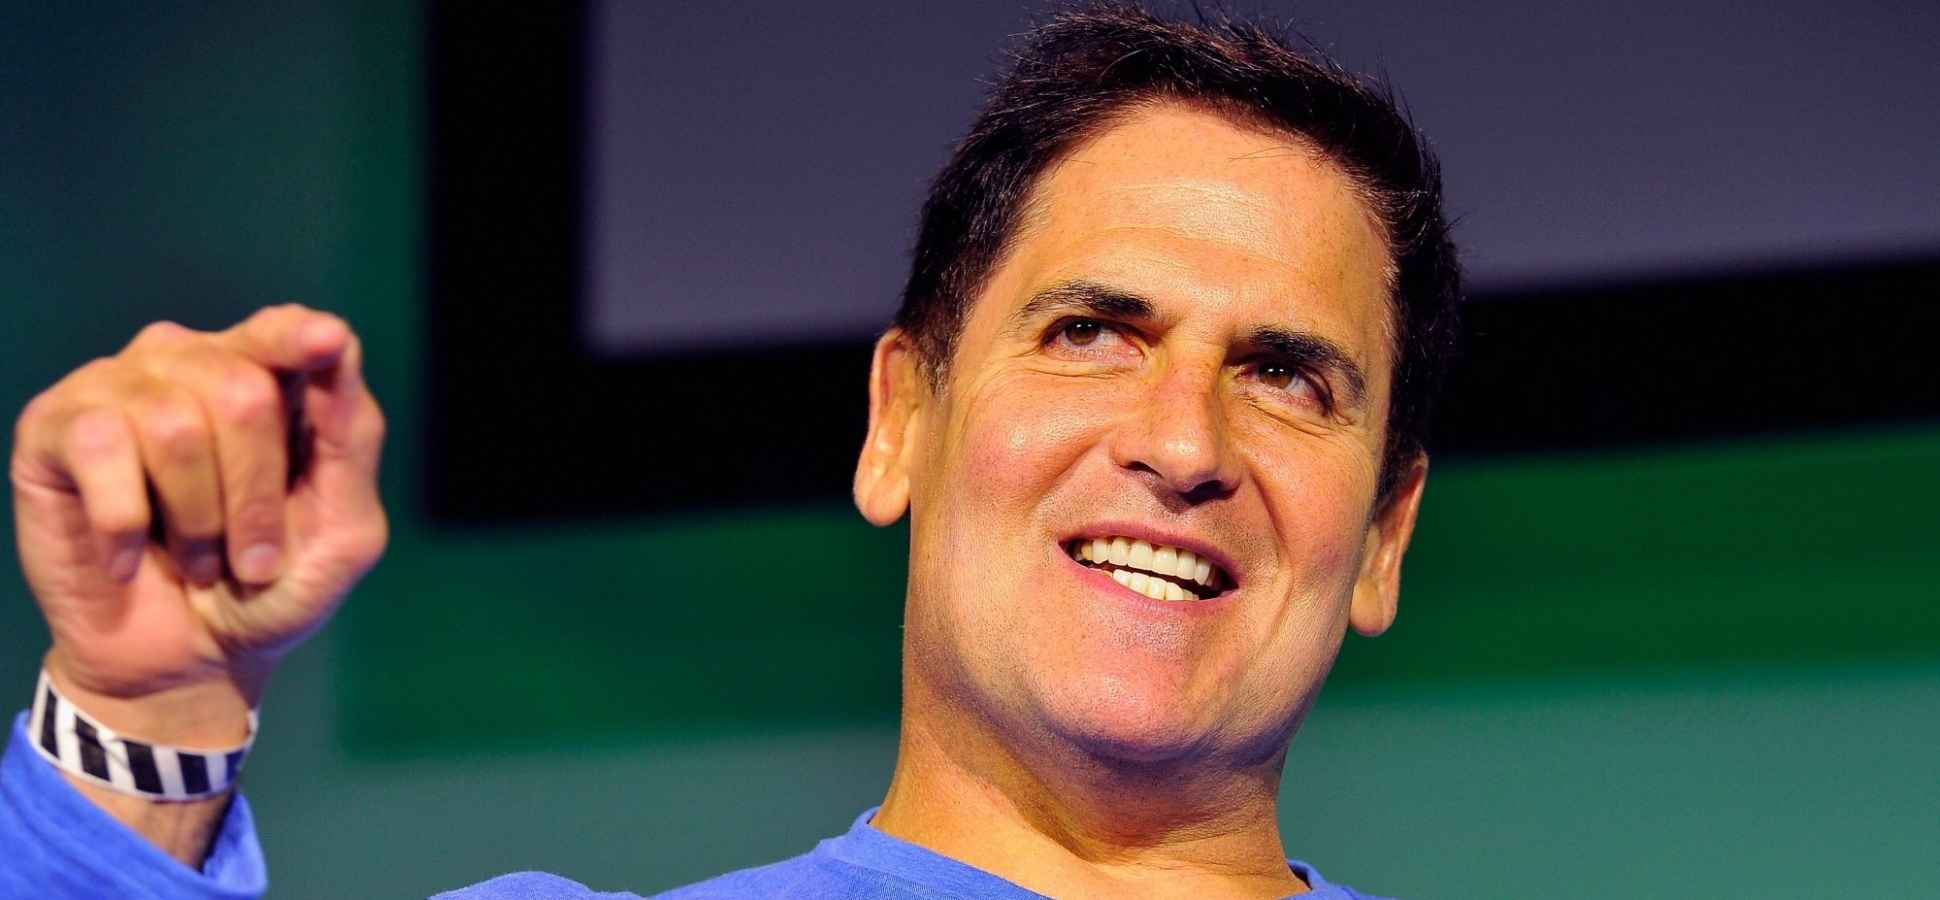 Mark Cuban Says This Will Soon Be the Most Sought-After Job Skill | Inc.com